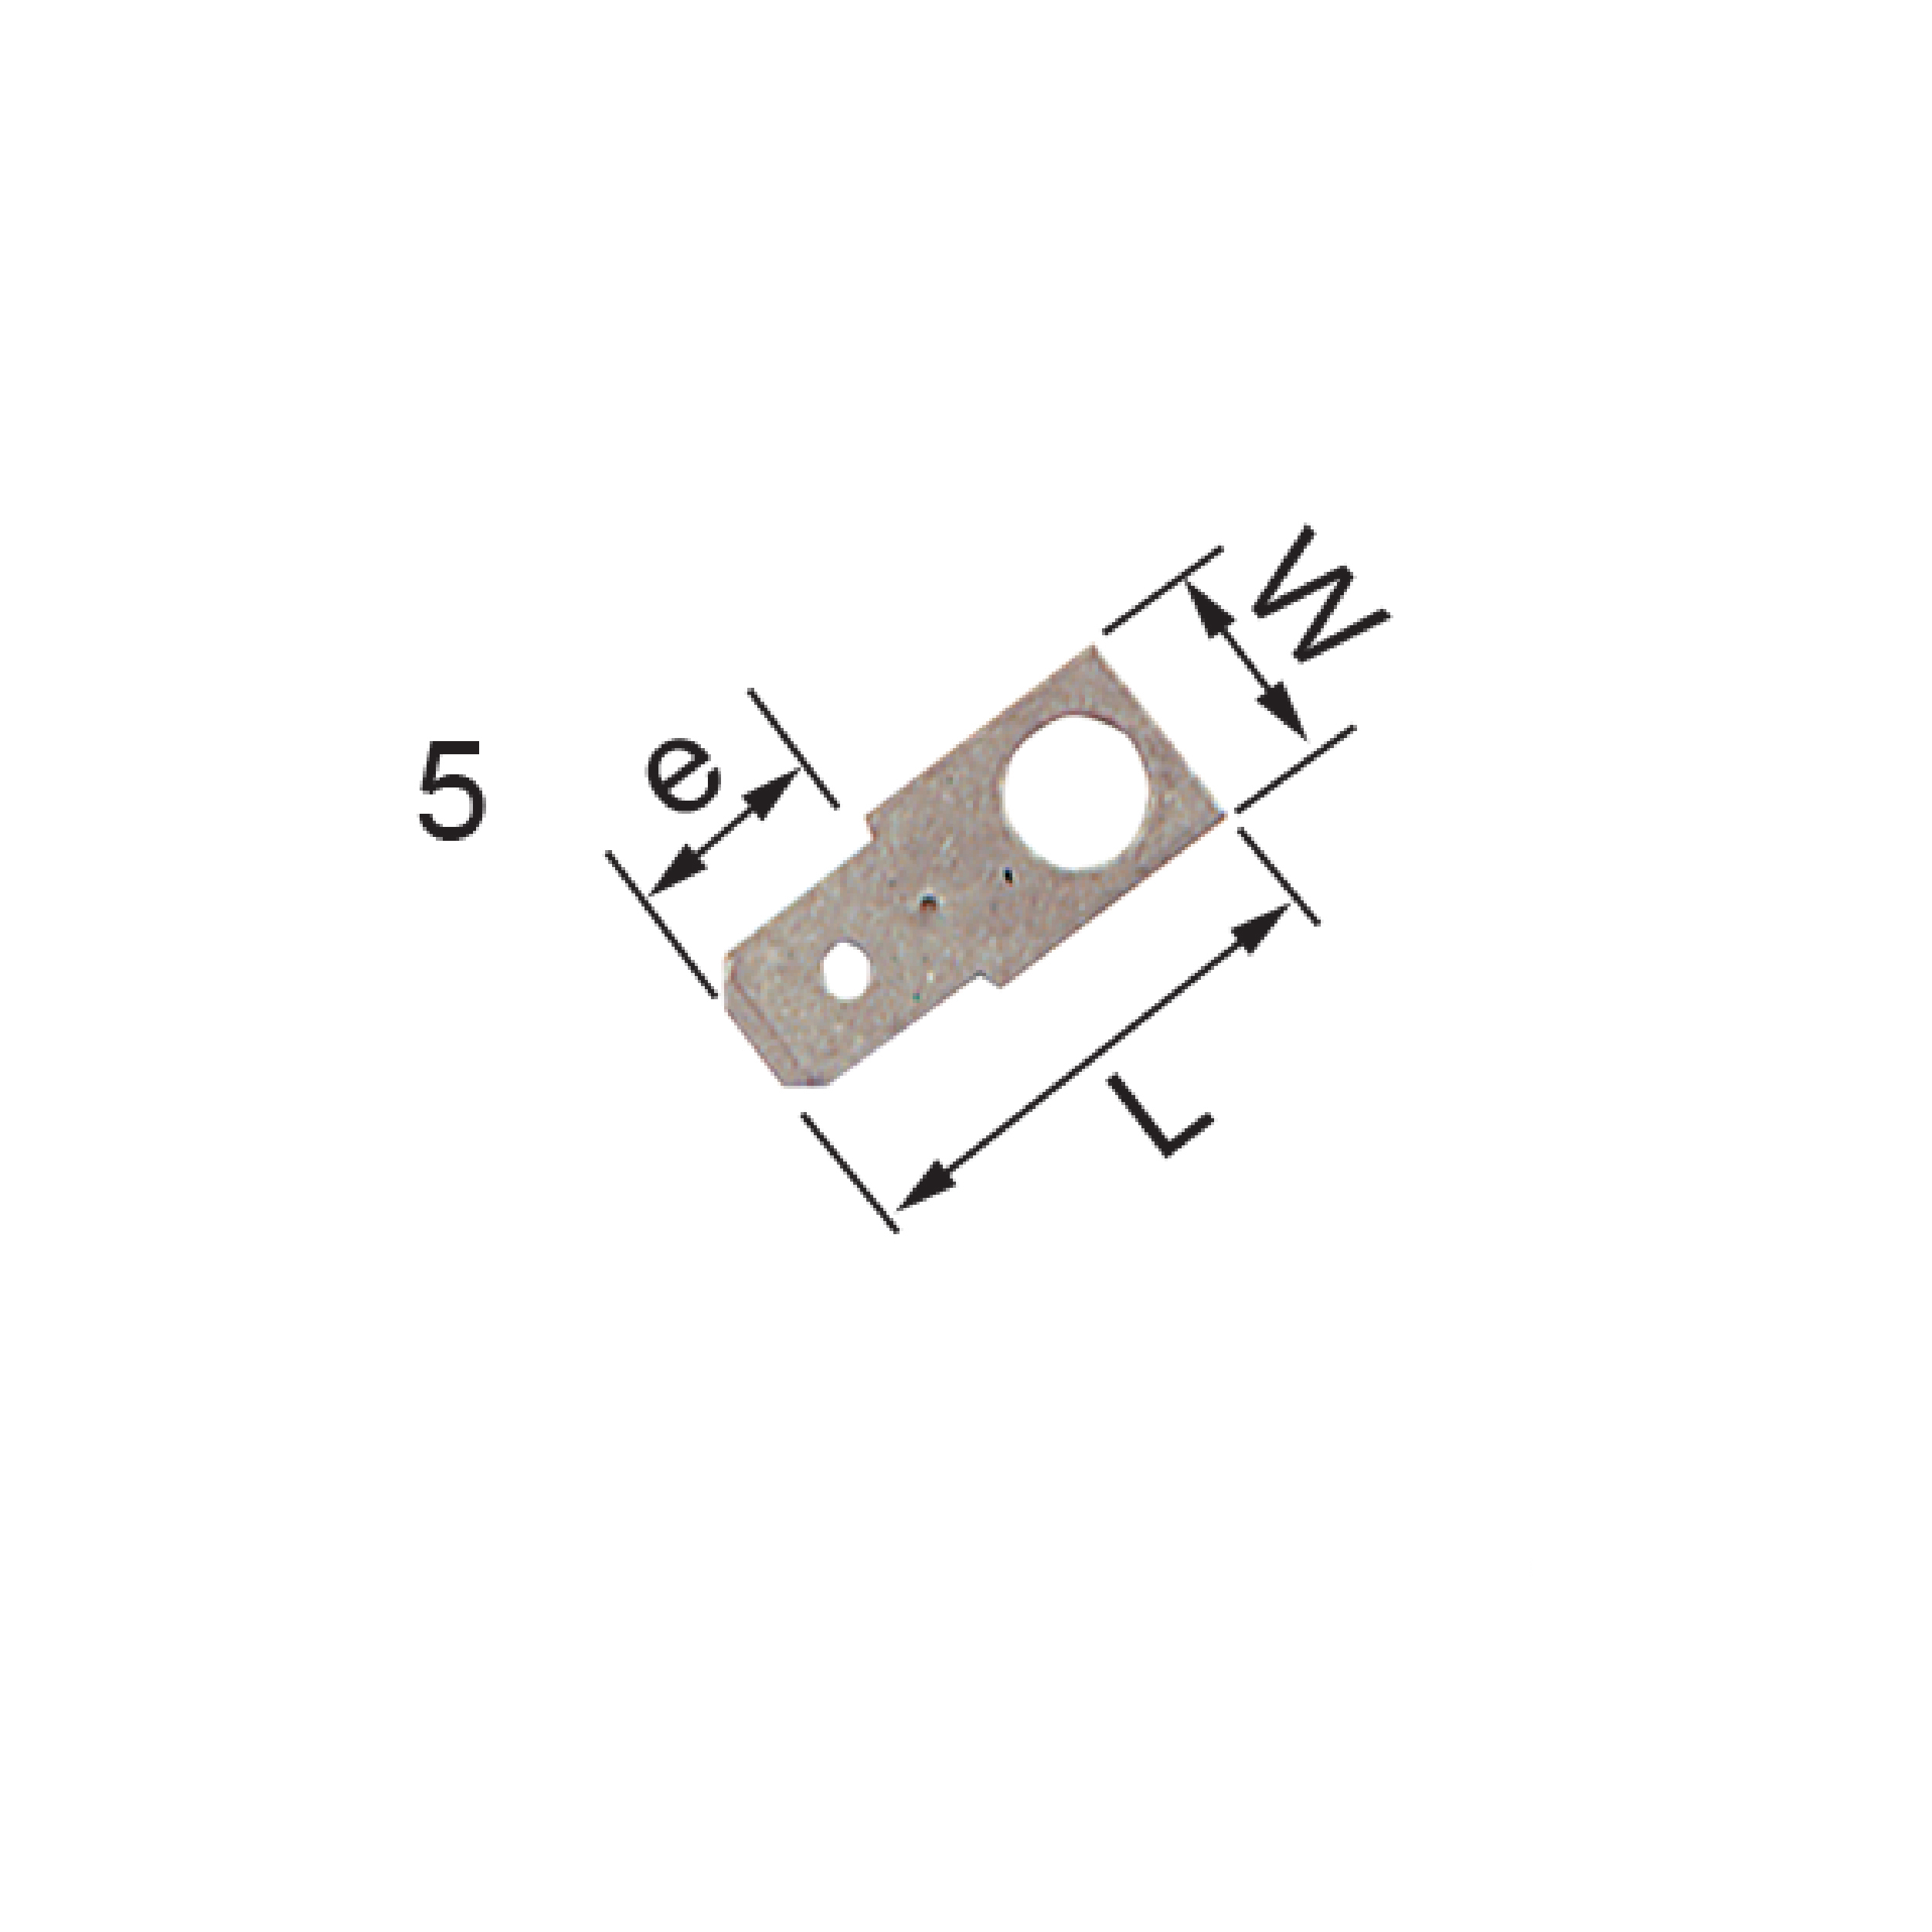 Elpress Un-Insulated Tabs 5 Part Numbers: B1807H4, B1807H5.